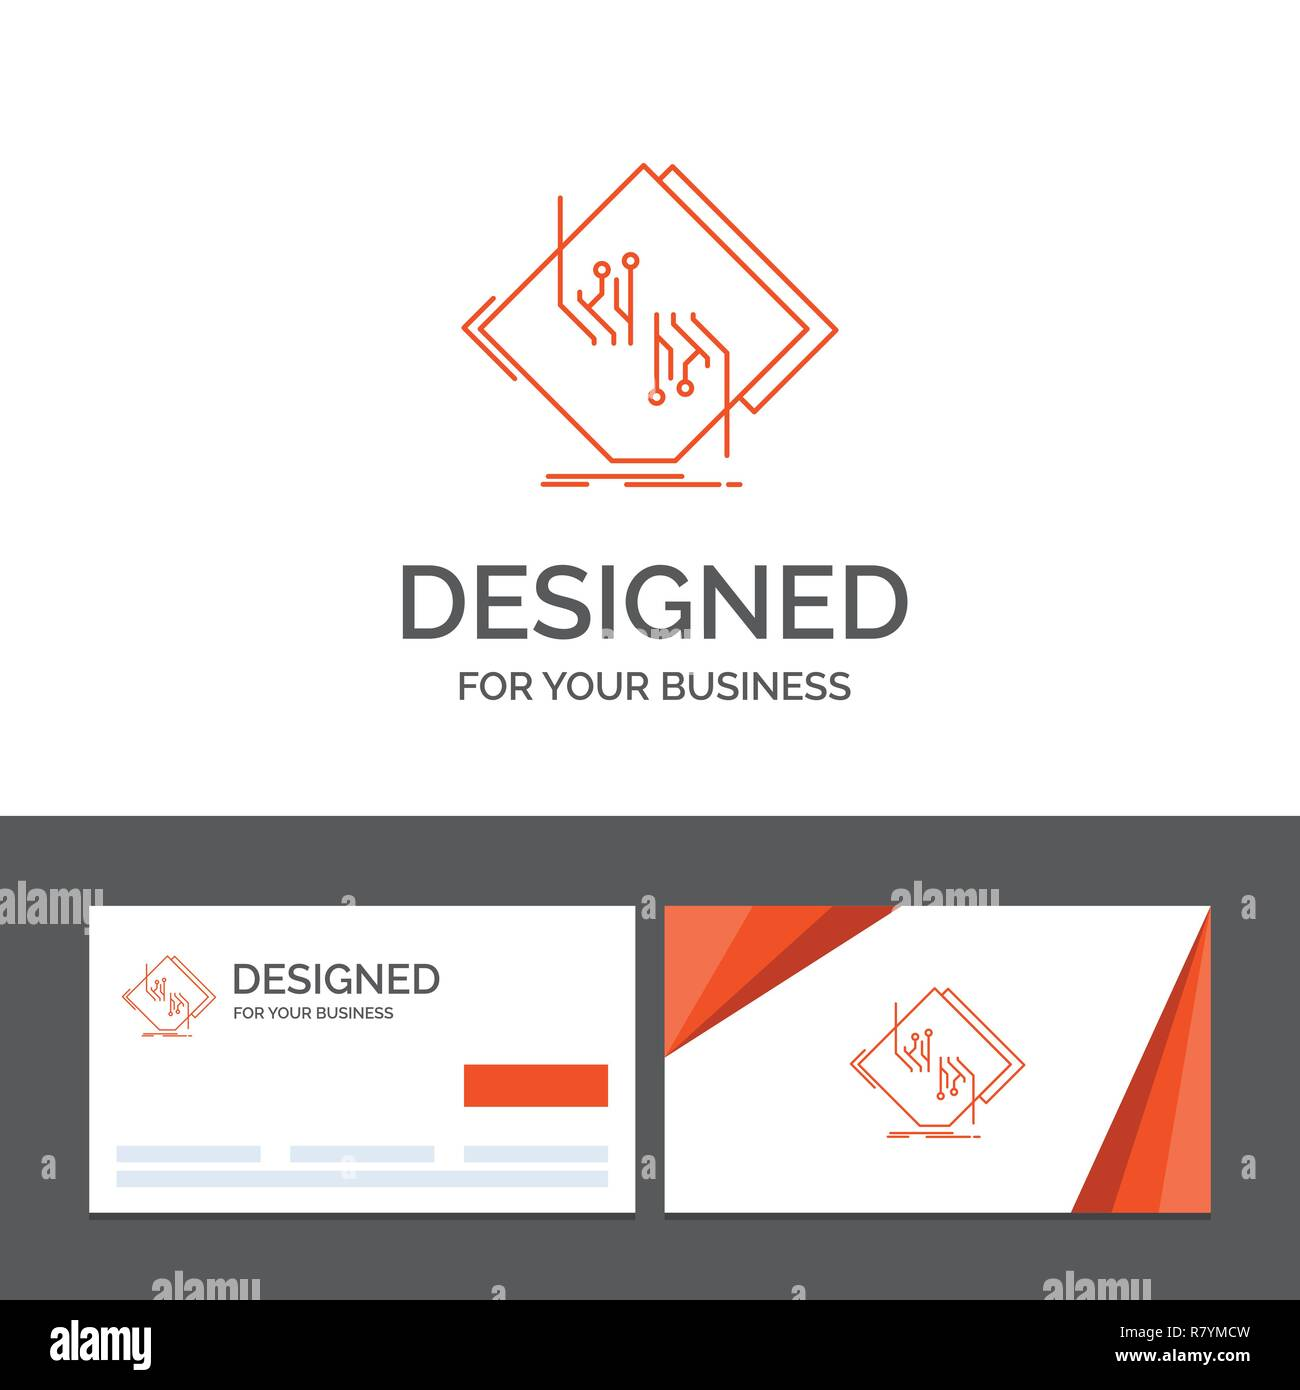 Business logo template for Board, chip, circuit, network, electronic. Orange Visiting Cards with Brand logo template - Stock Image